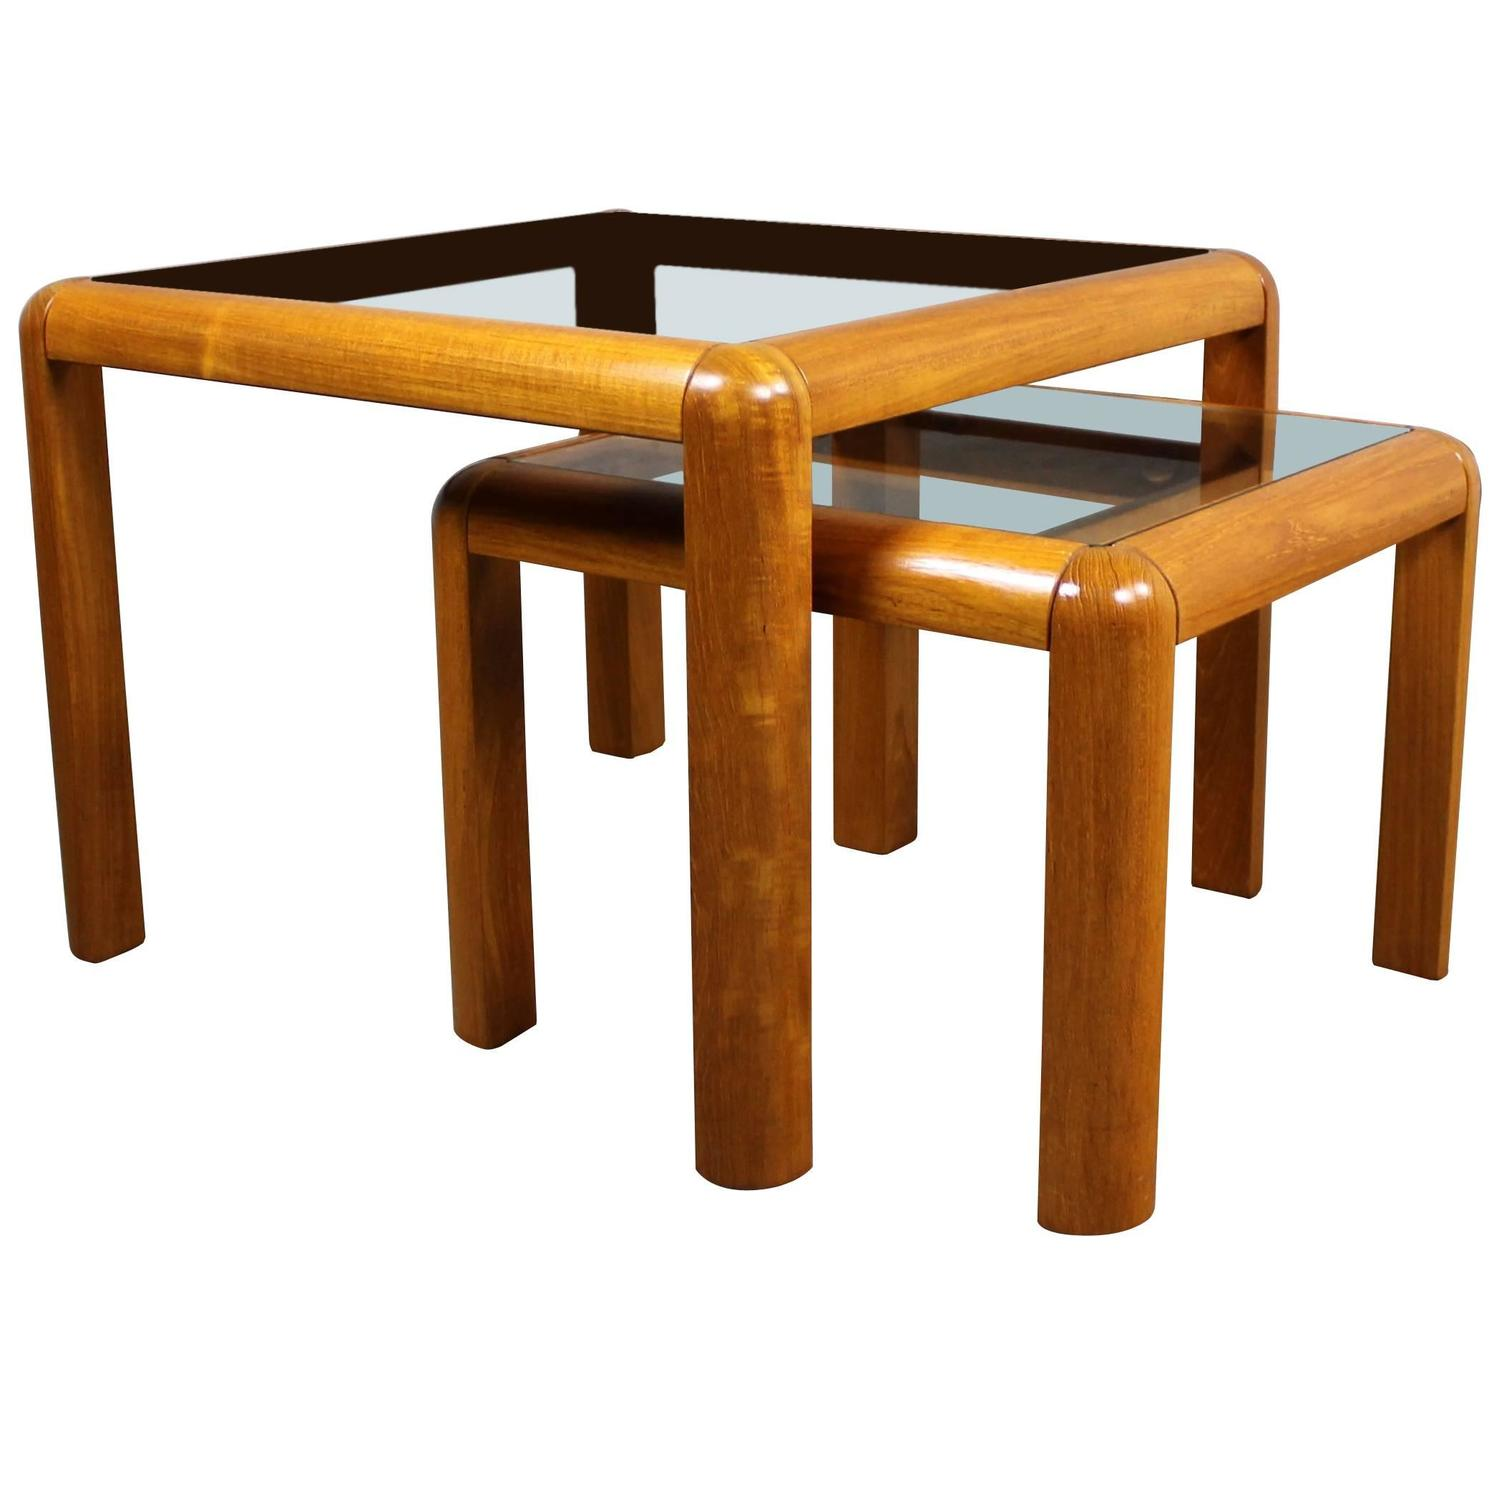 Retro light teak circular glass top coffee table nest of tables by - Vintage Danish Mid Century Modern Teak And Glass Square Nesting Side Tables At 1stdibs